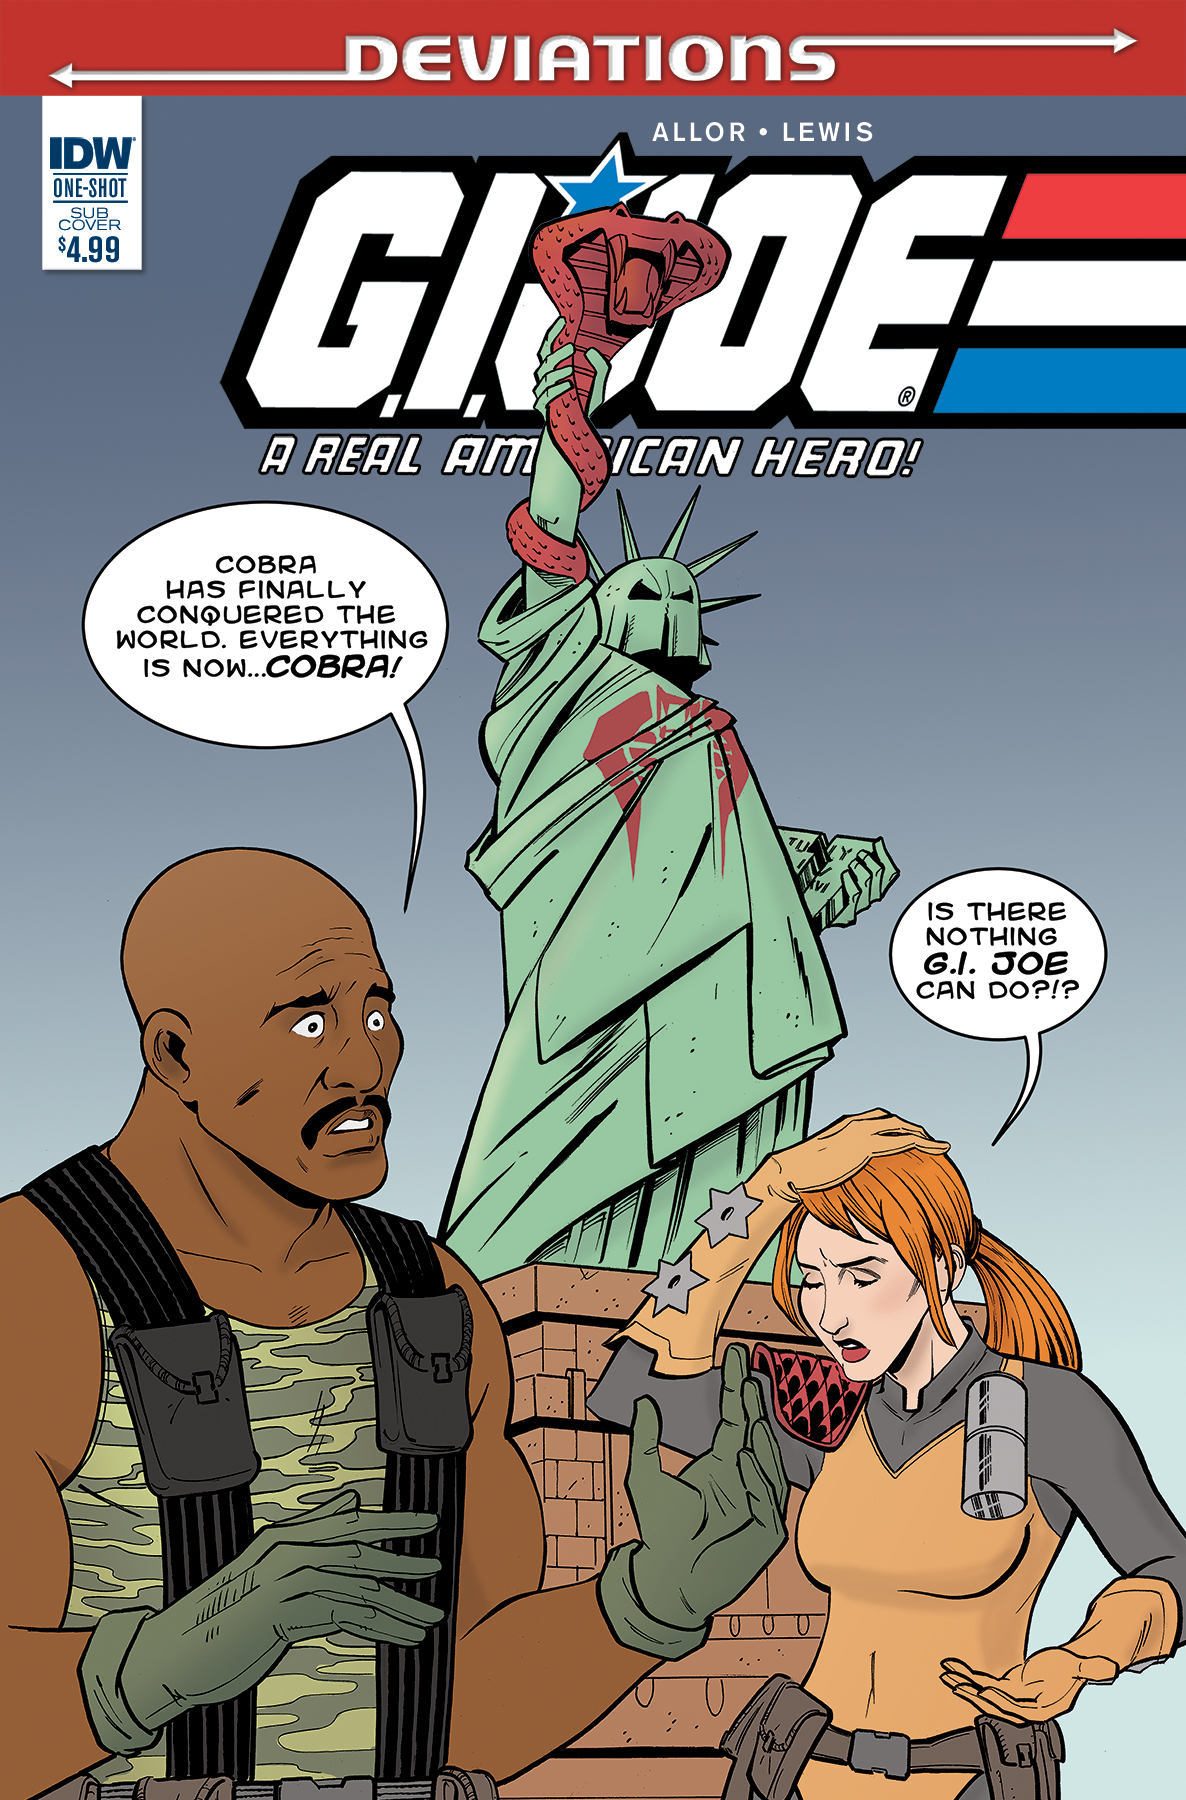 G.I. JOE Deviations Cover